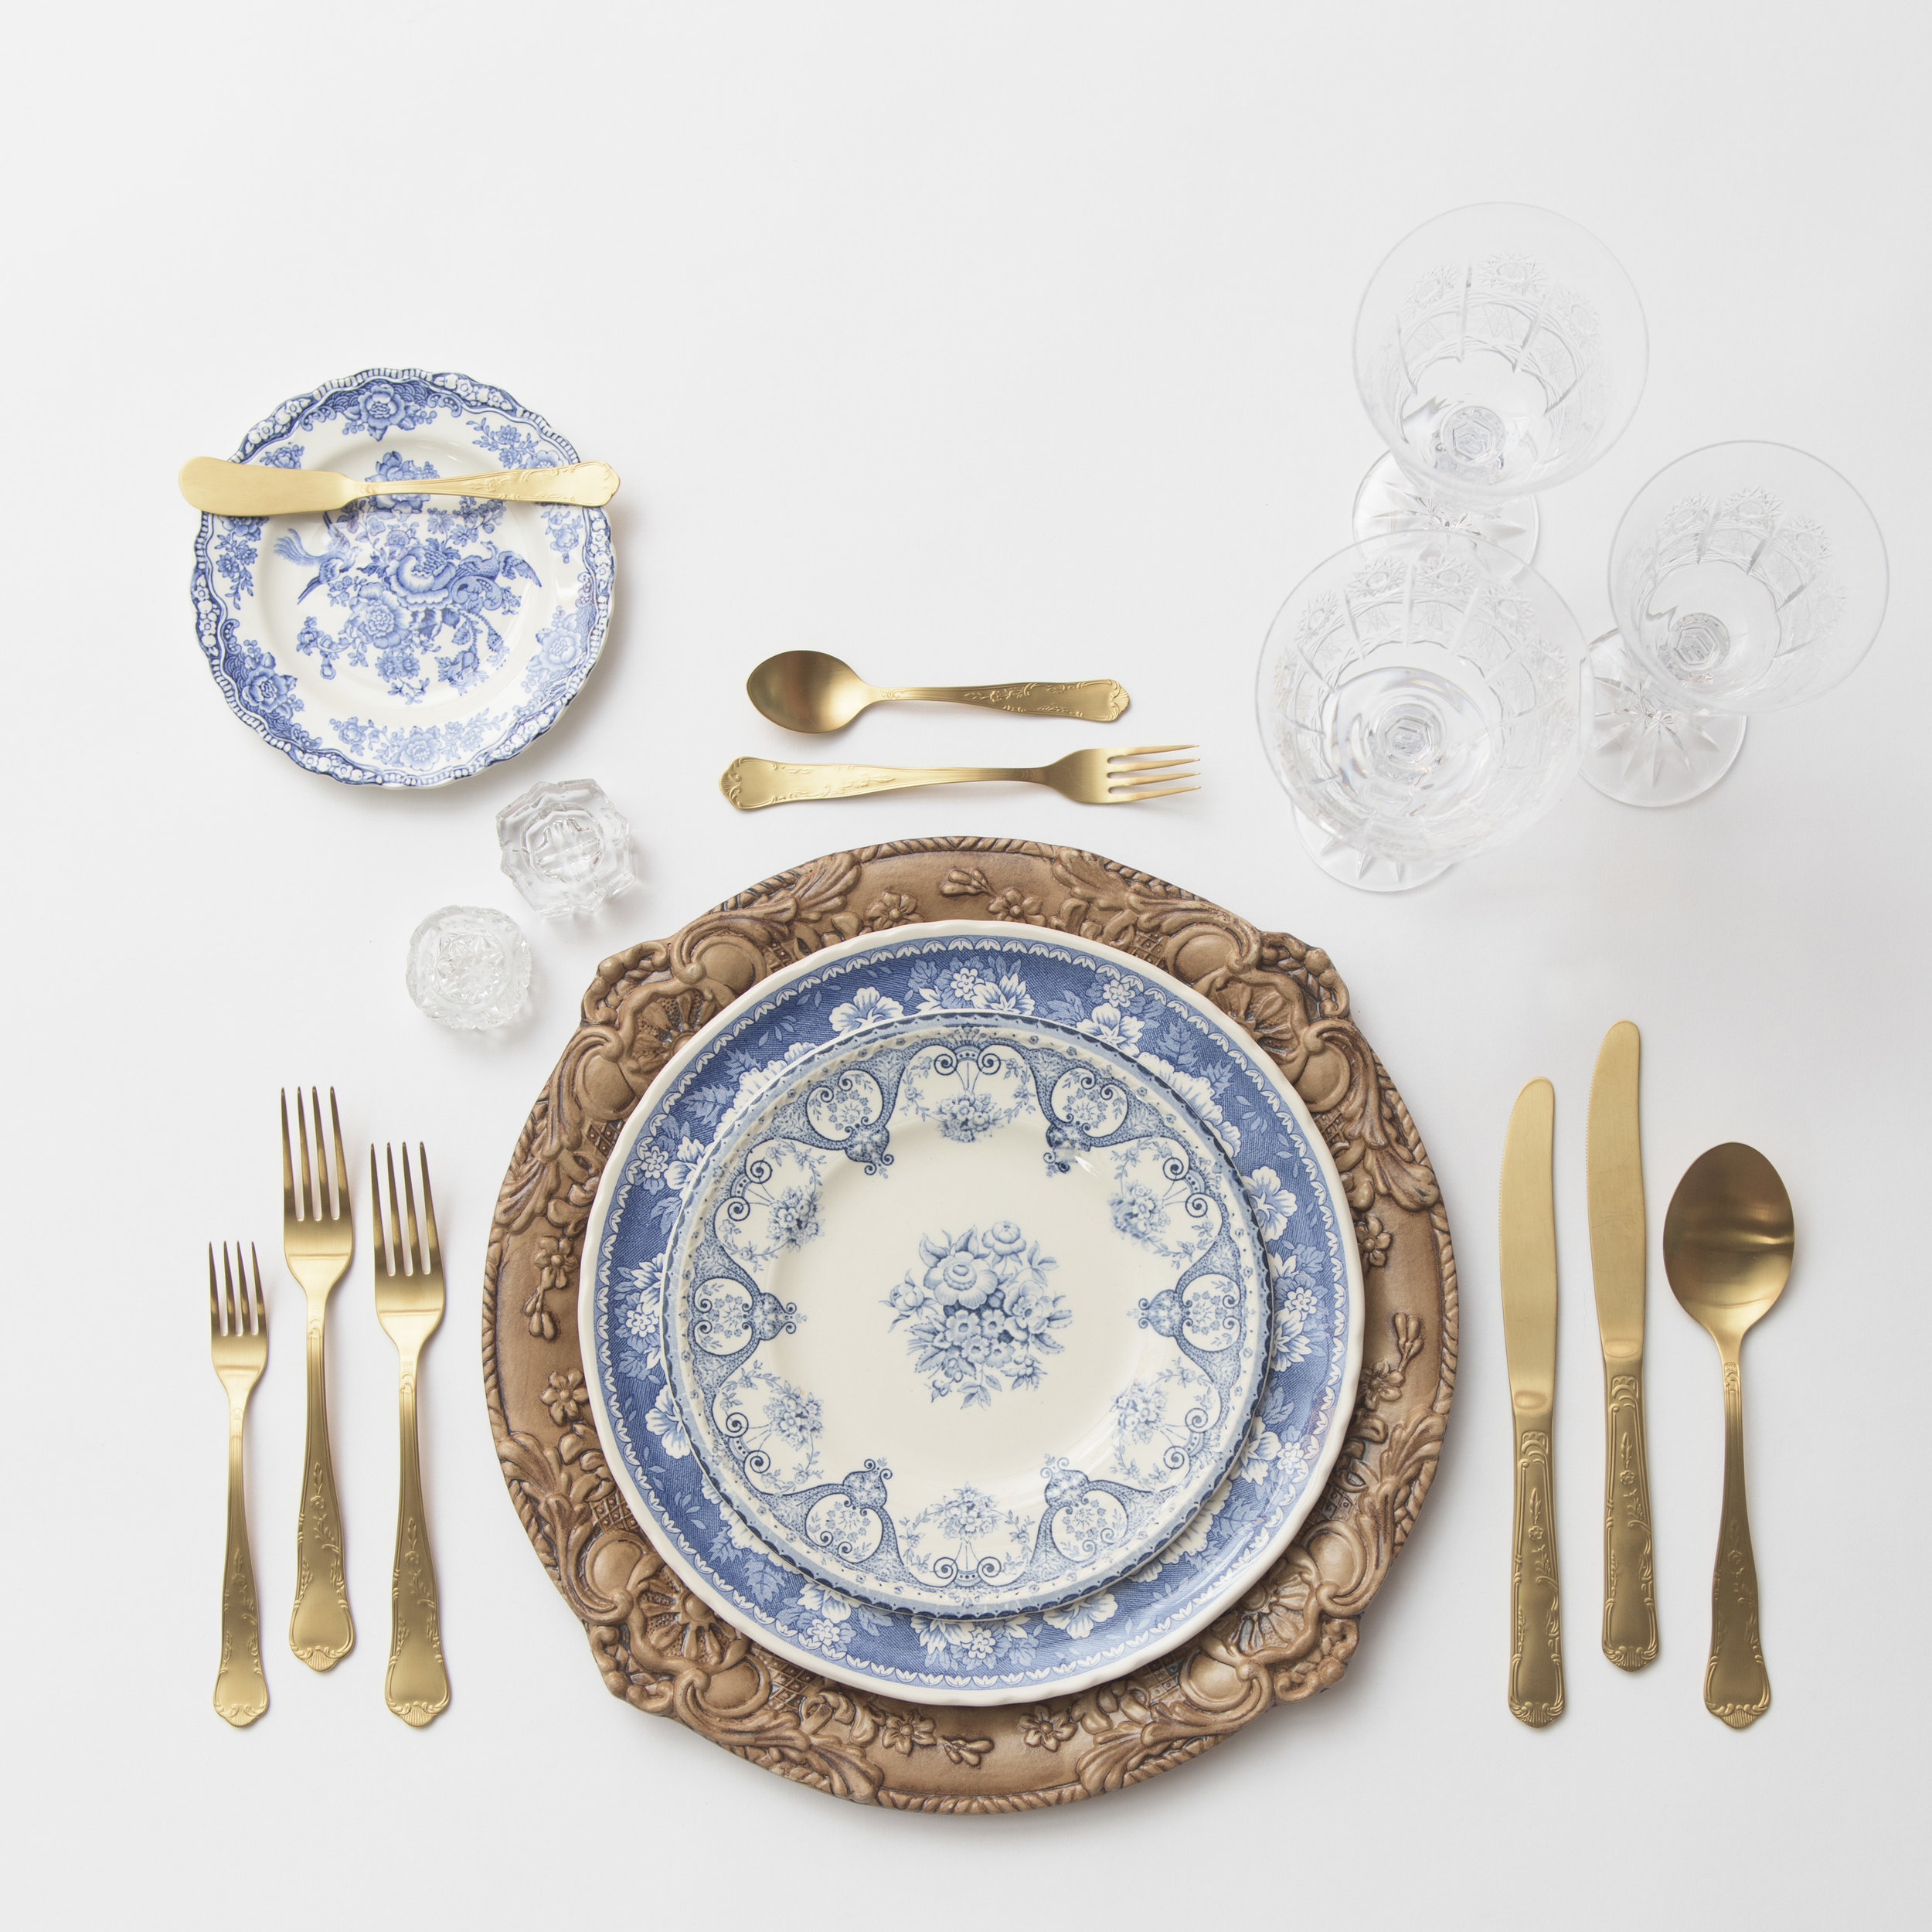 RENT: Verona Chargers in Walnut + Blue Garden Collection Vintage China + Chateau Flatware in Matte Gold + Czech Crystal Stemware + Antique Crystal Salt Cellars   SHOP: Verona Chargers in Walnut